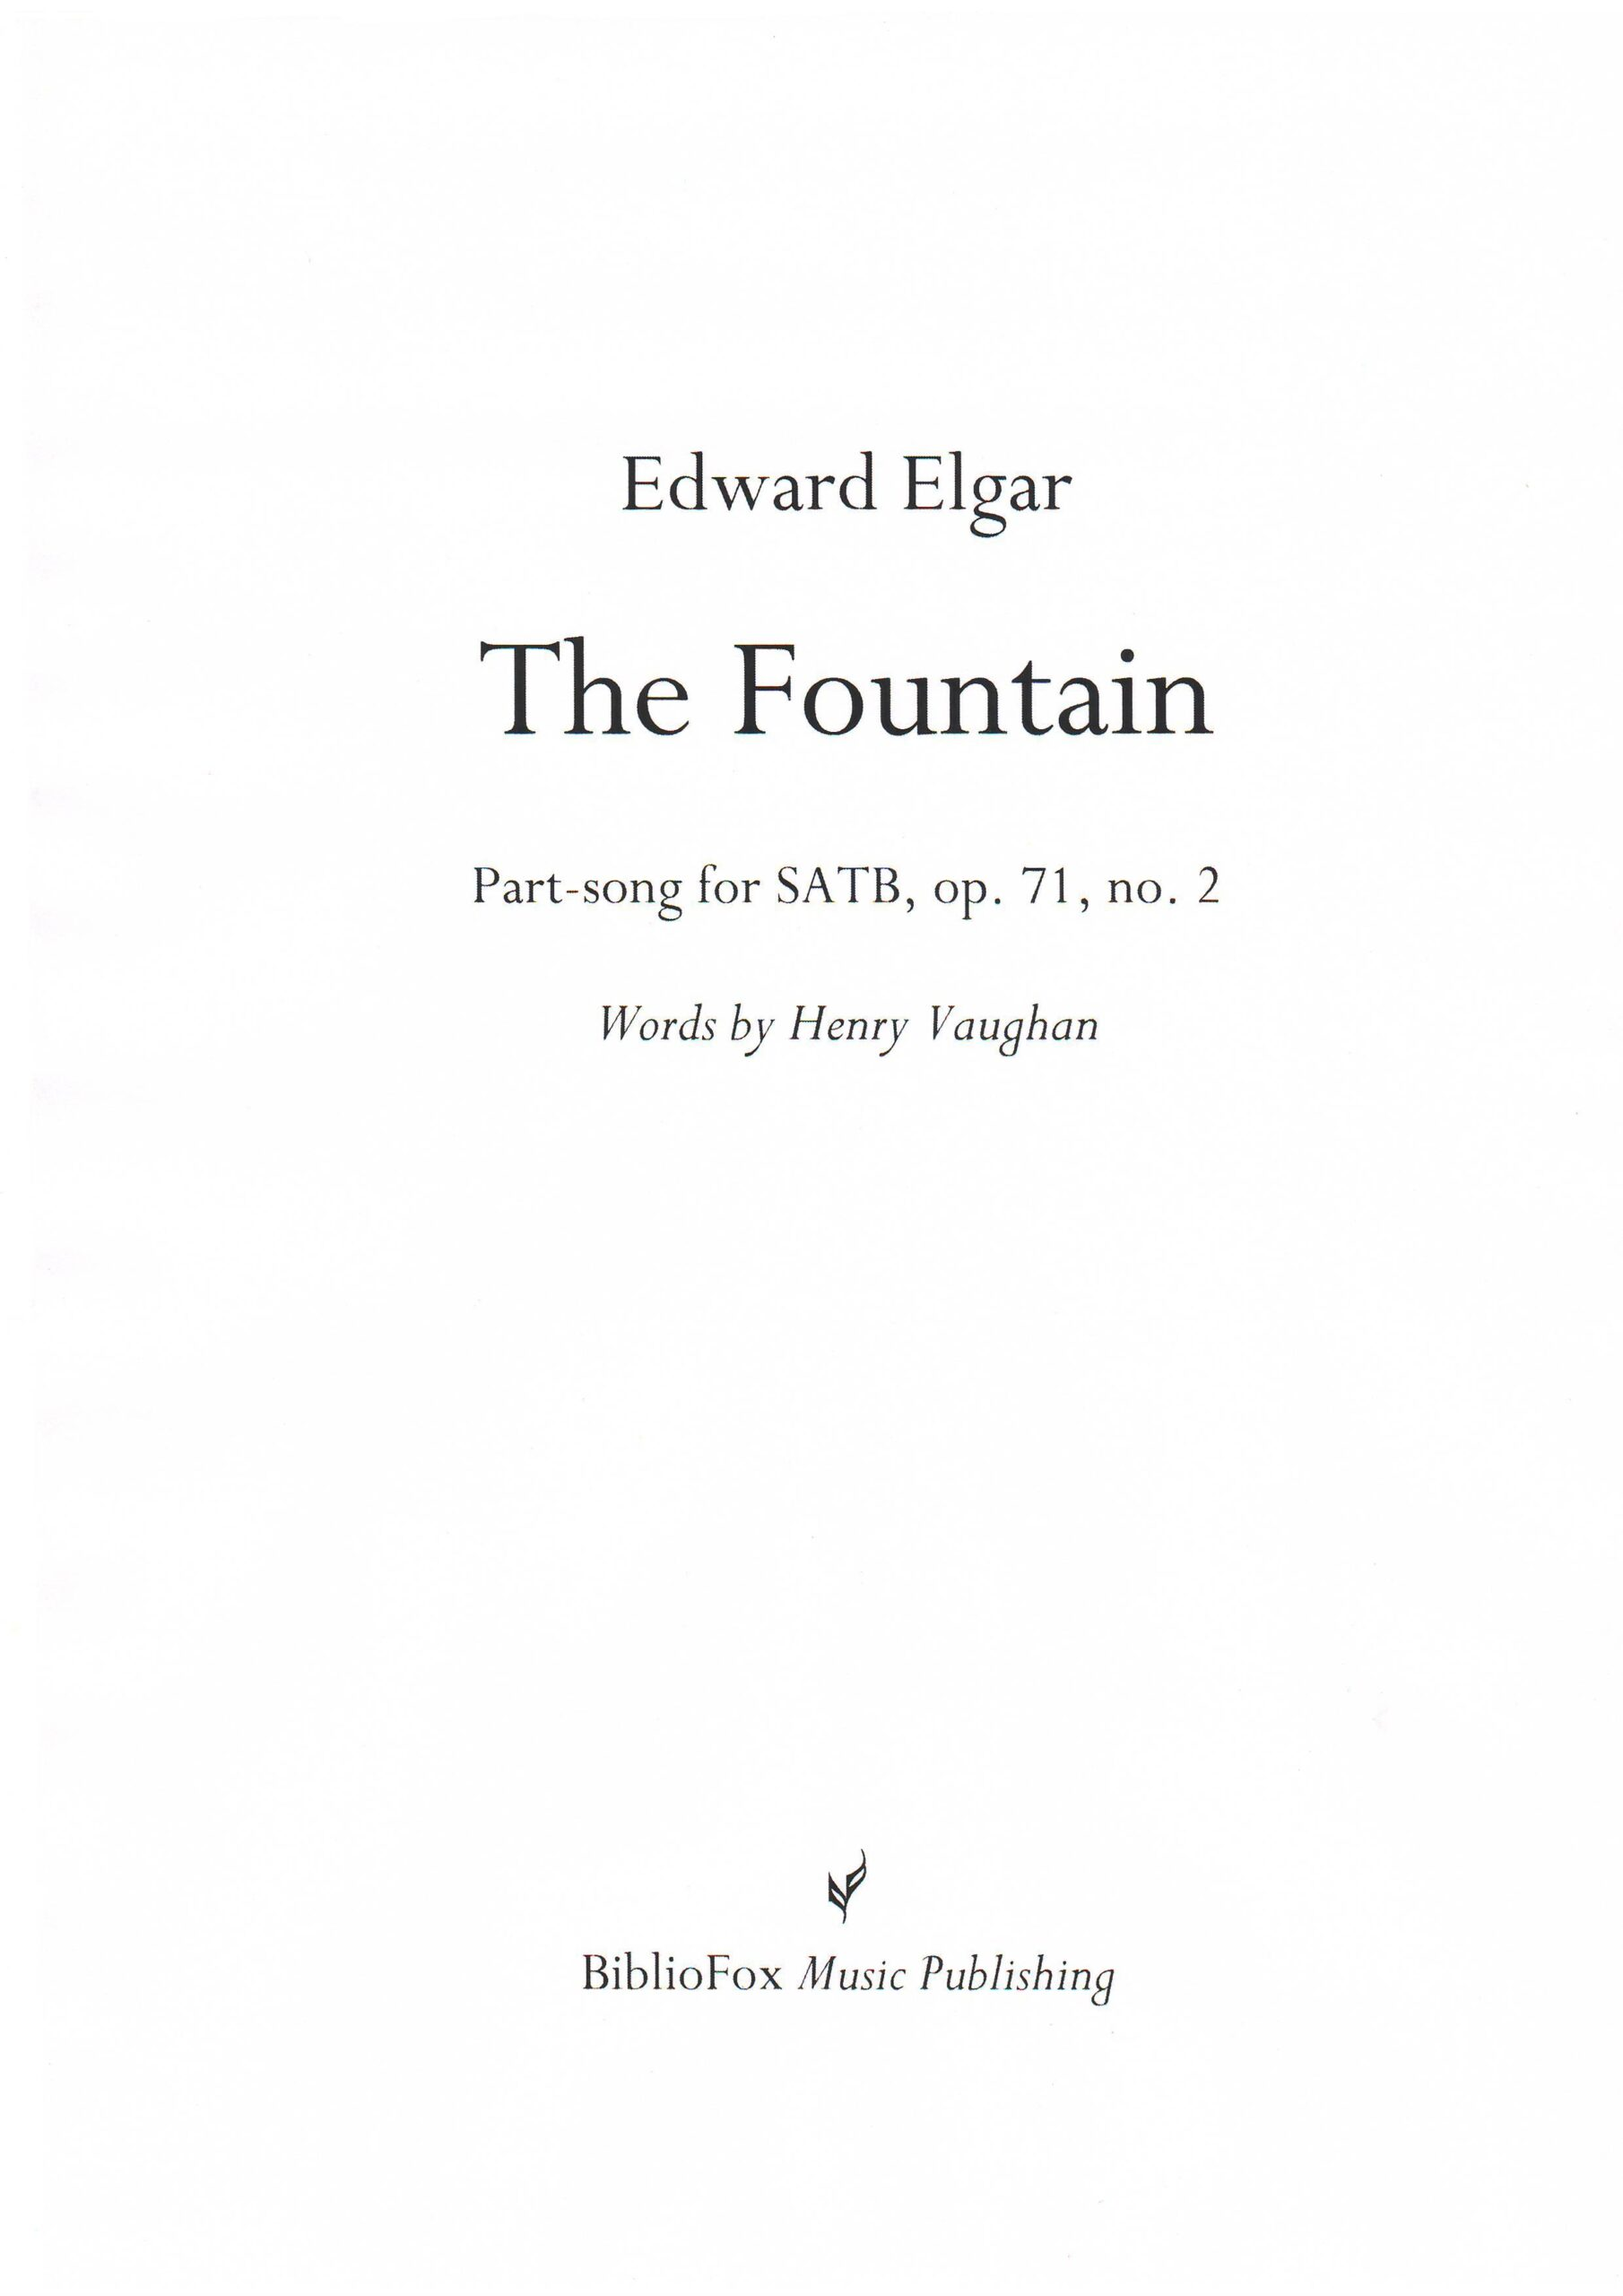 Cover page of Elgar The Fountain